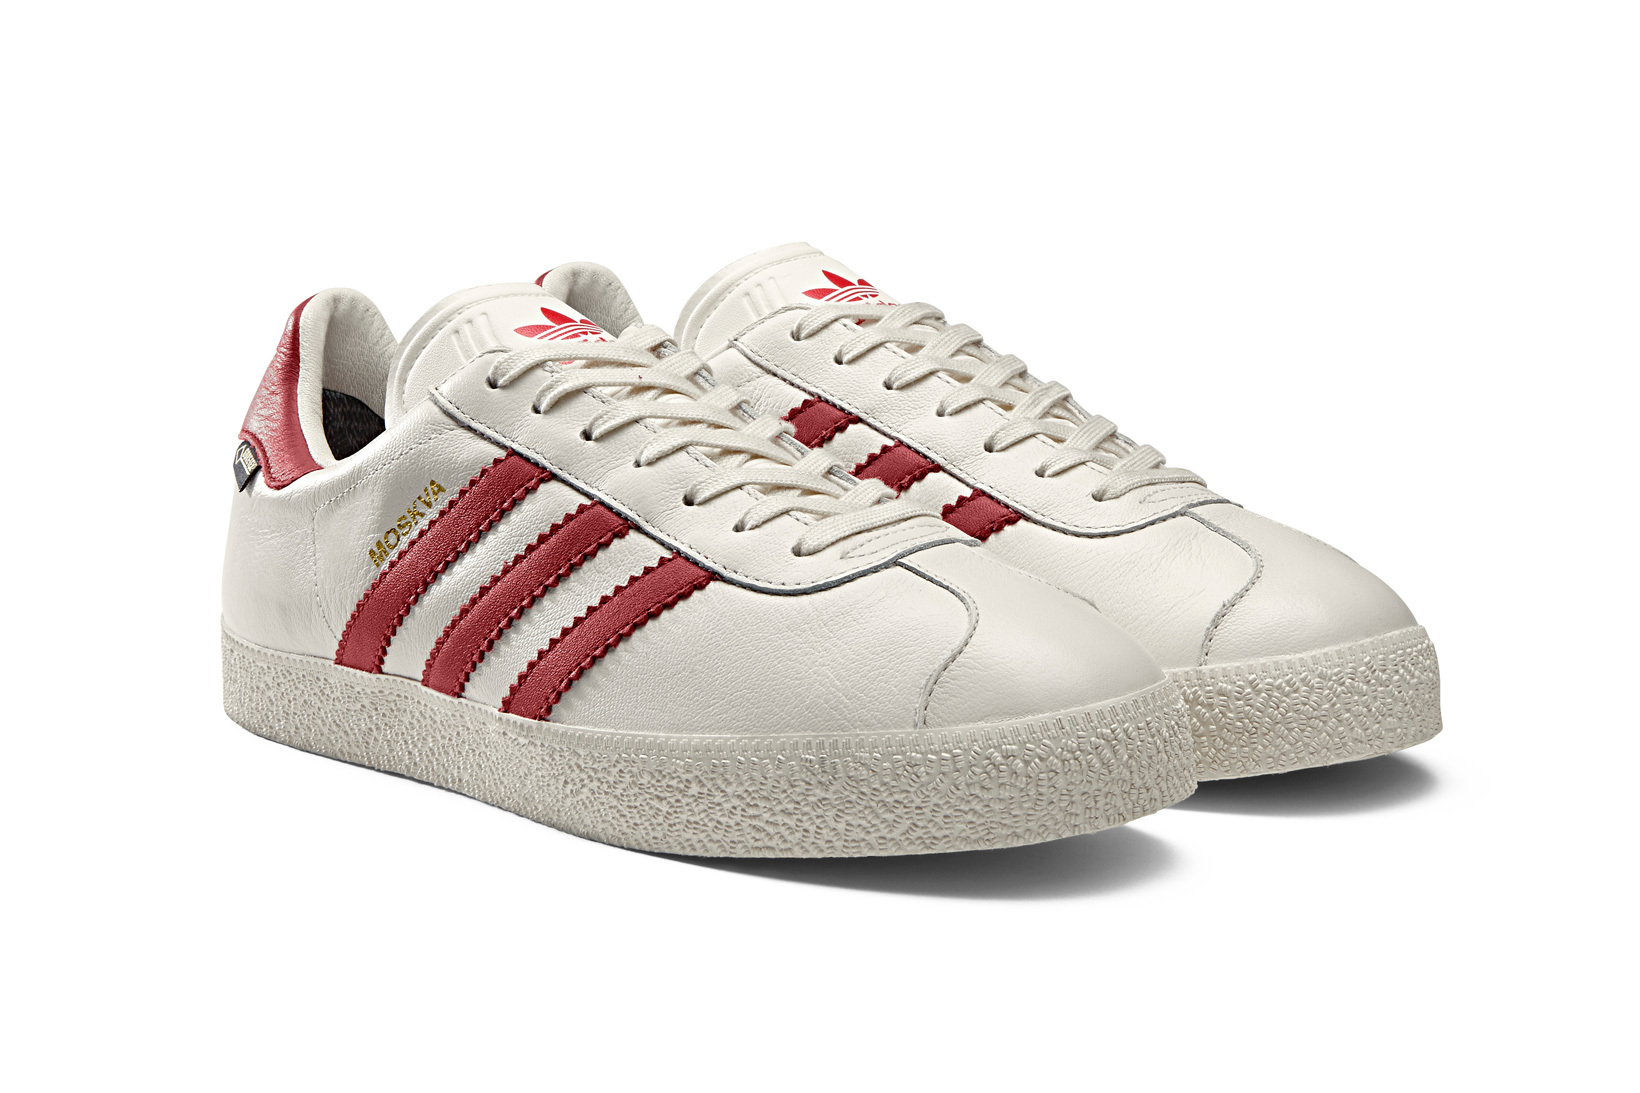 adidas-originals-gazelle-gtx-city-pack-russian-cities-4